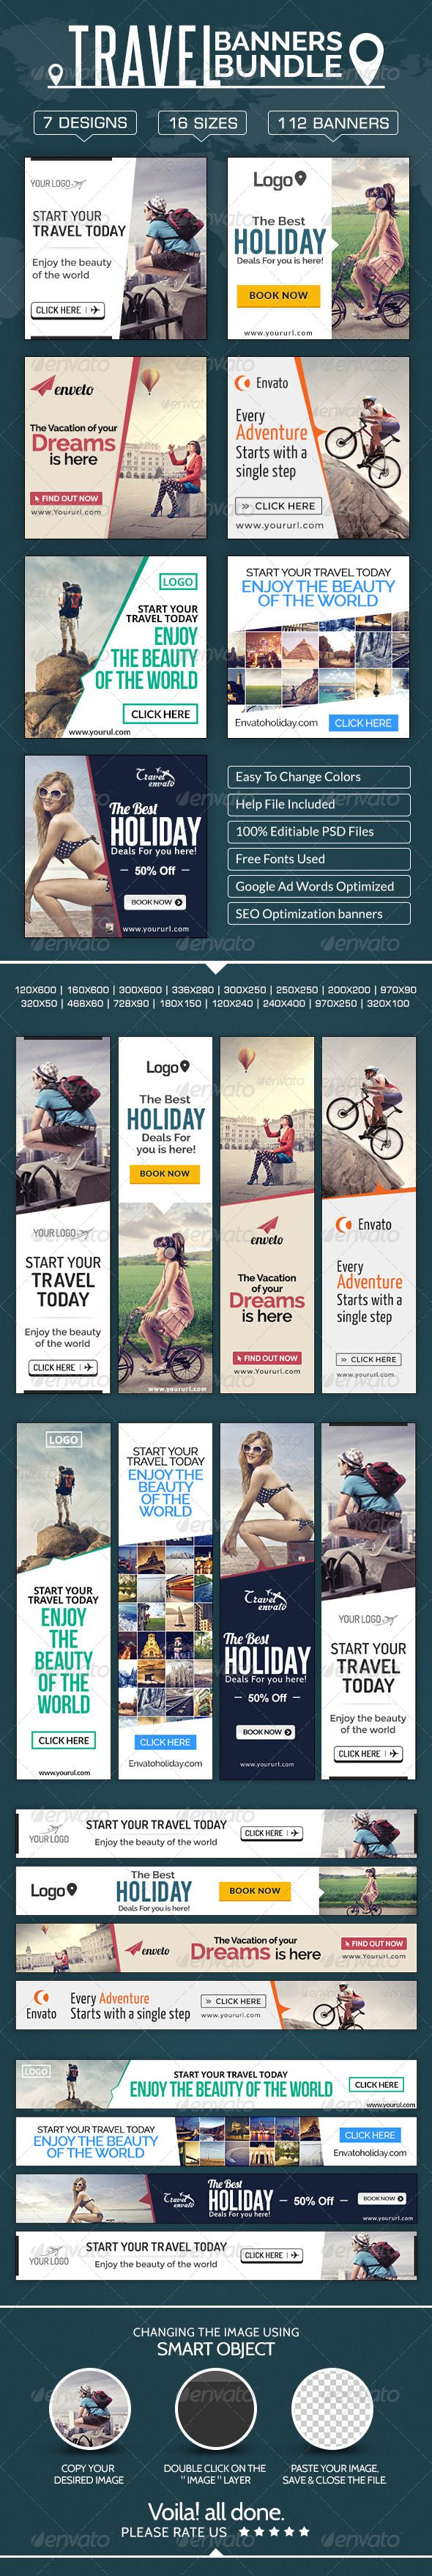 Travel Banners Mega Bundle - 7 sets Template PSD   Buy and Download: http://graphicriver.net/item/travel-banners-mega-bundle-7-sets/8603590?WT.ac=category_thumb&WT.z_author=doto&ref=ksioks